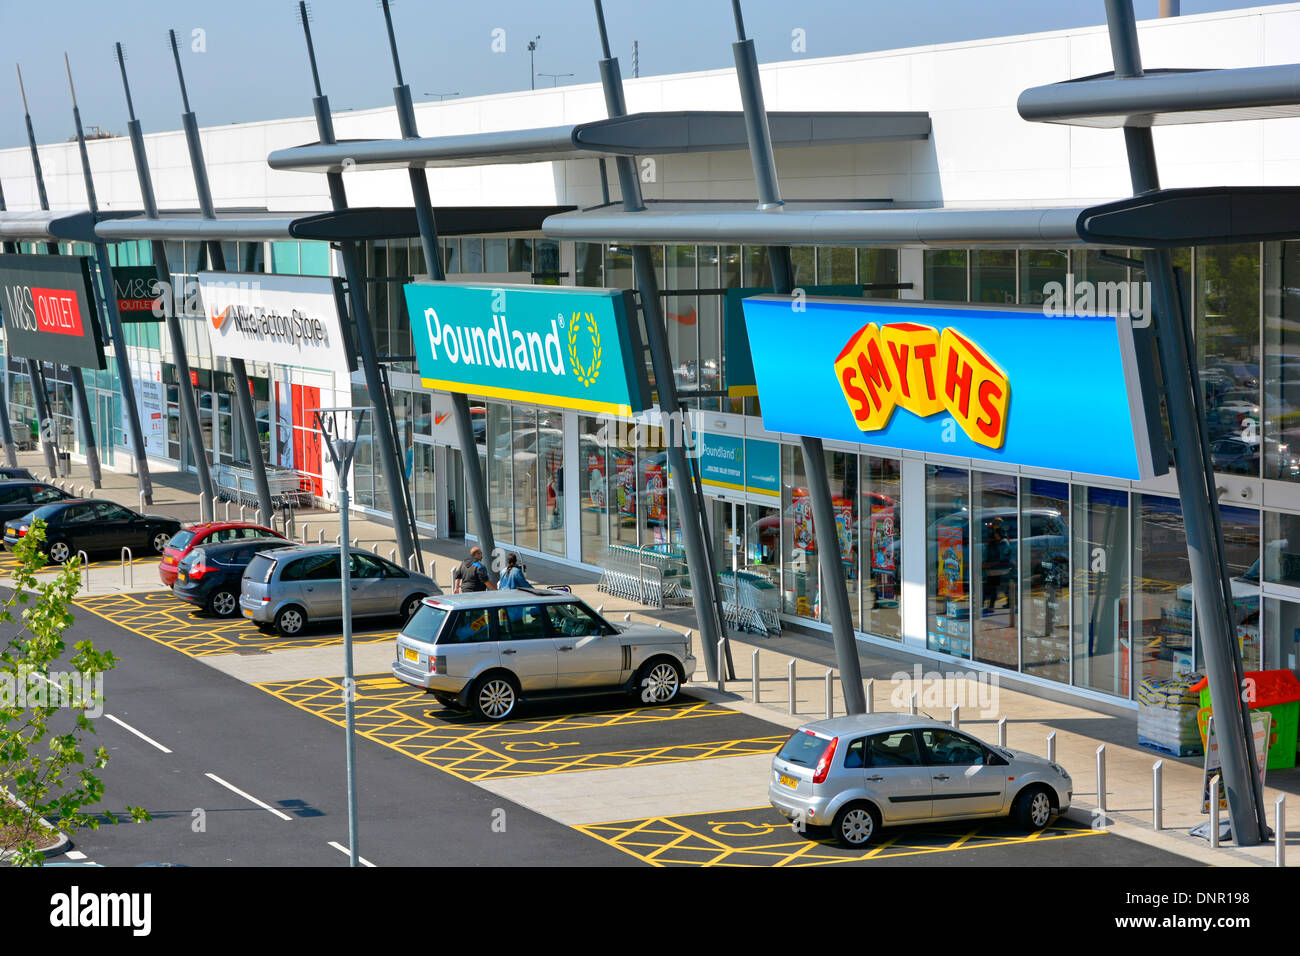 Free disabled parking bays outside retail park shopping units including Smyths, Poundland, Nike, and M&S Outlet stores - Stock Image